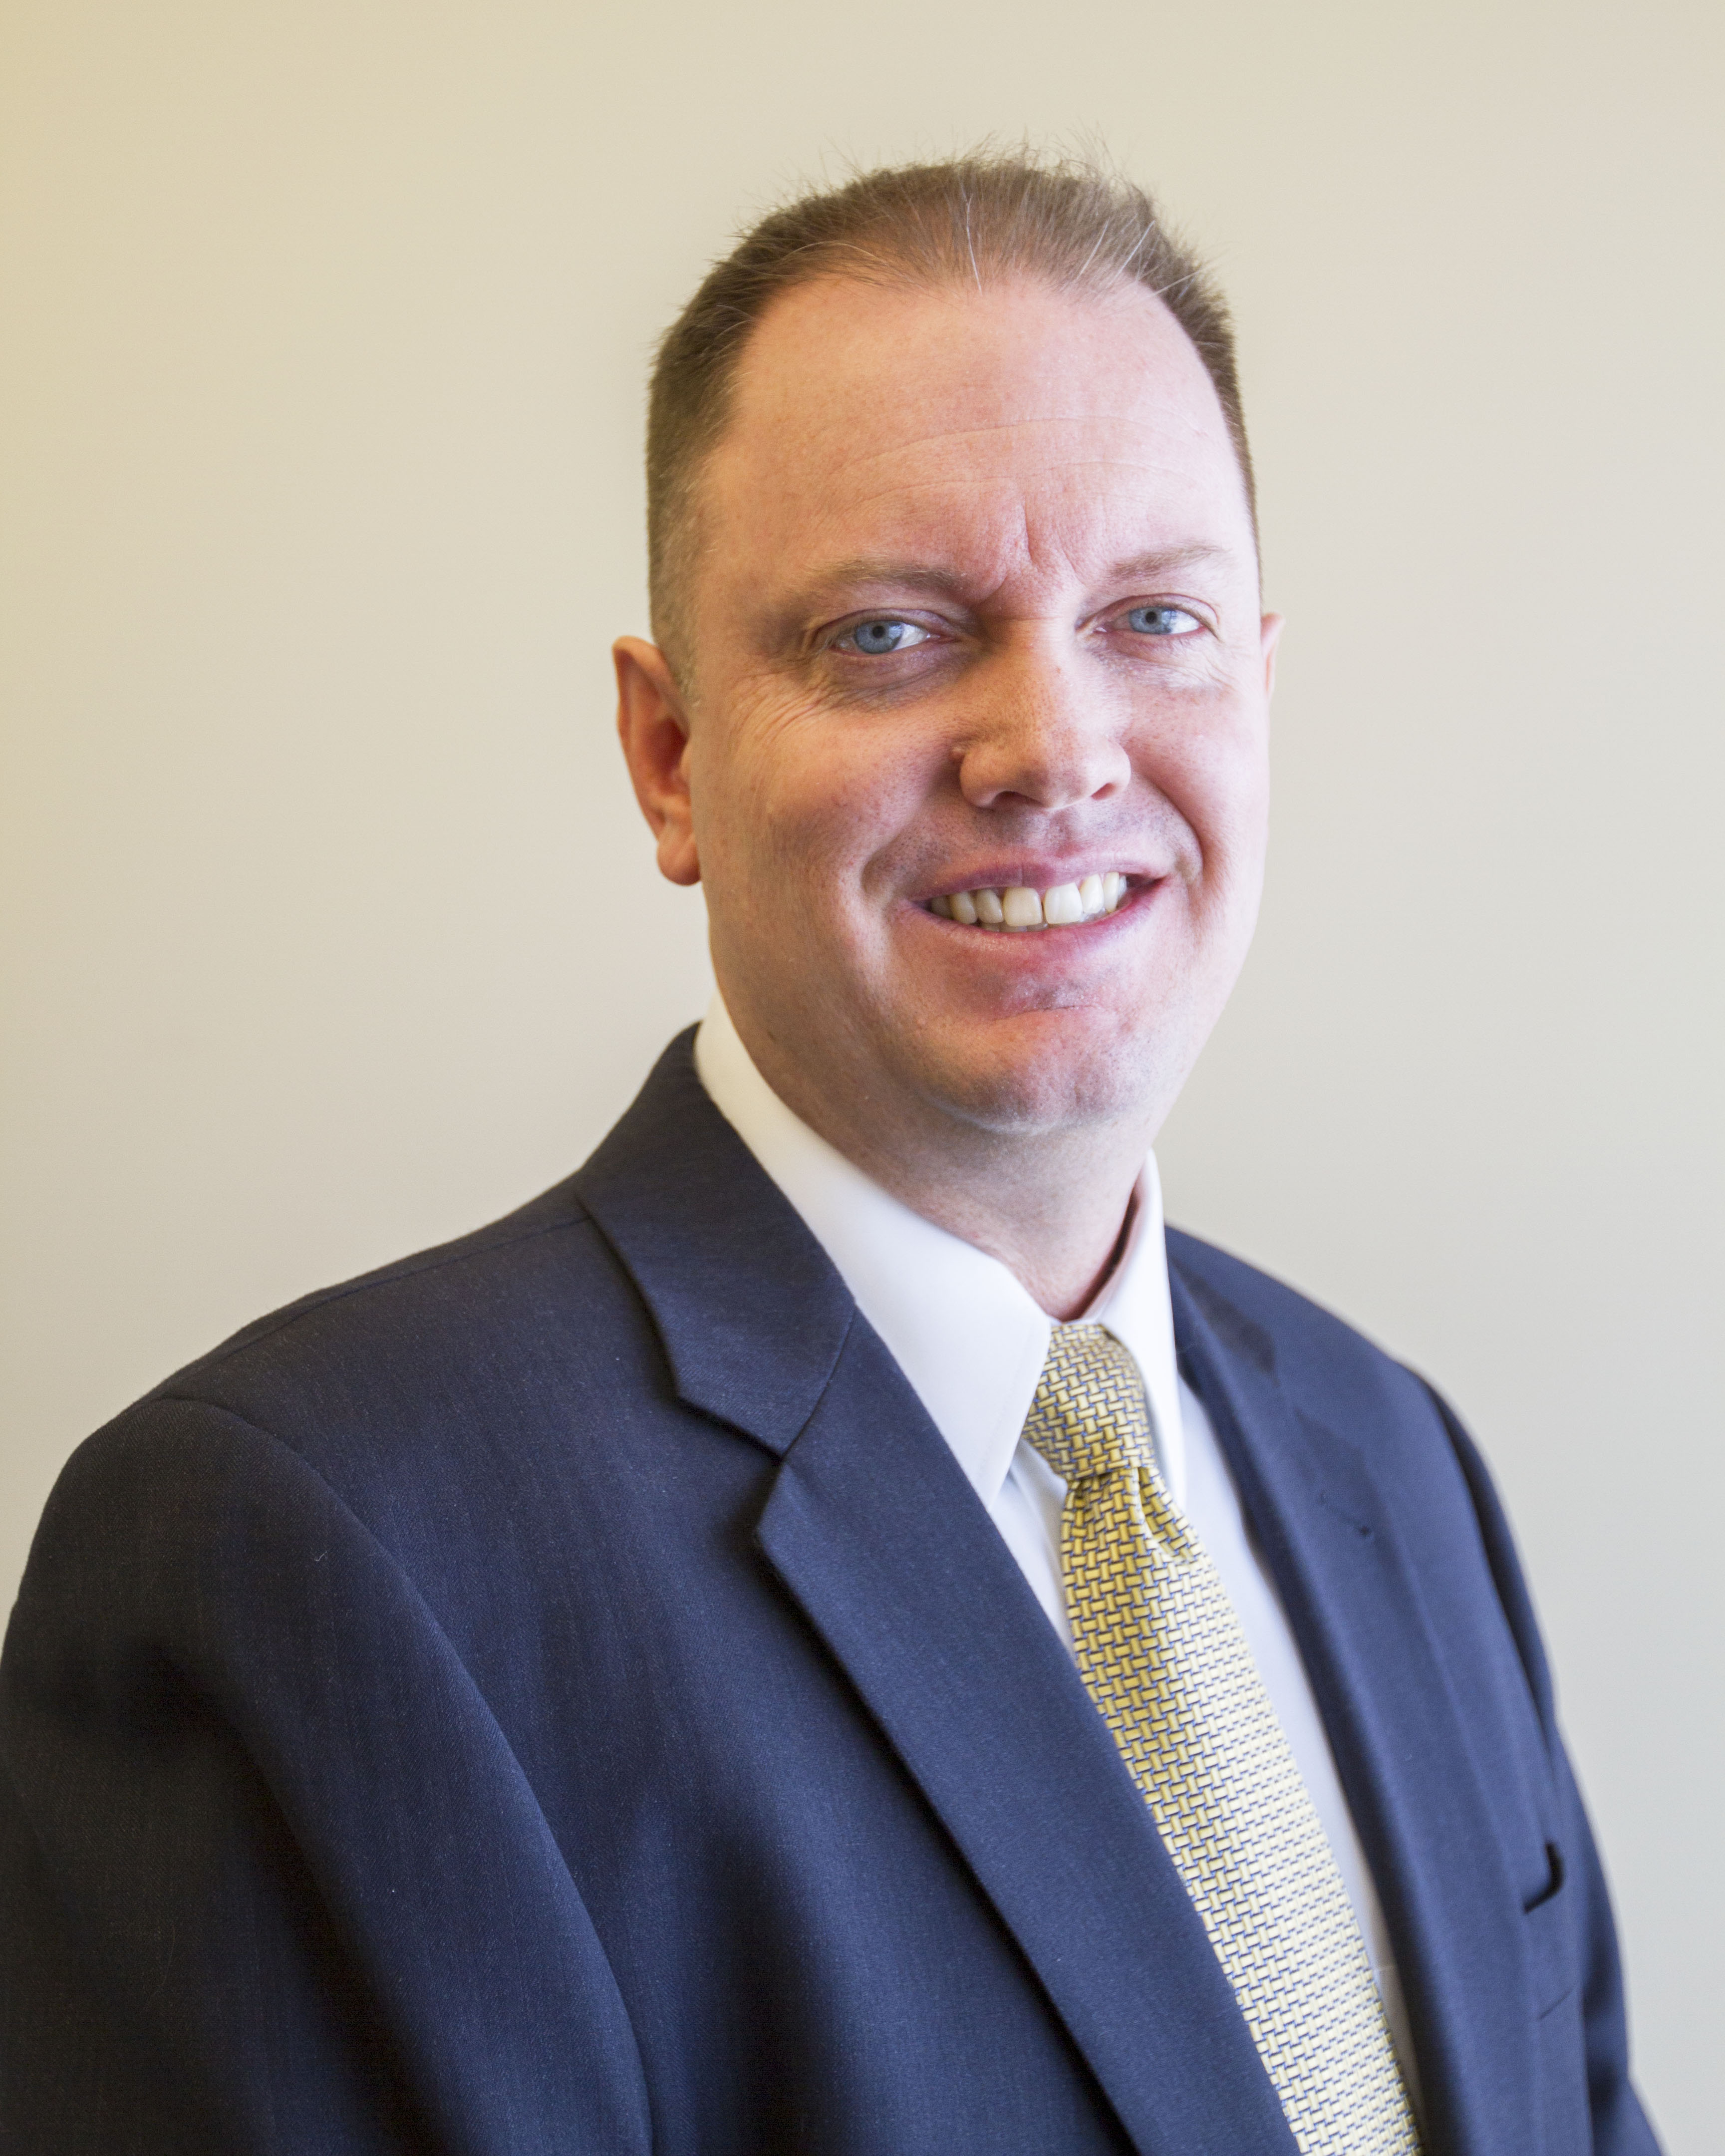 Larry H Miller Dealerships Promote Rourk Kemp To The